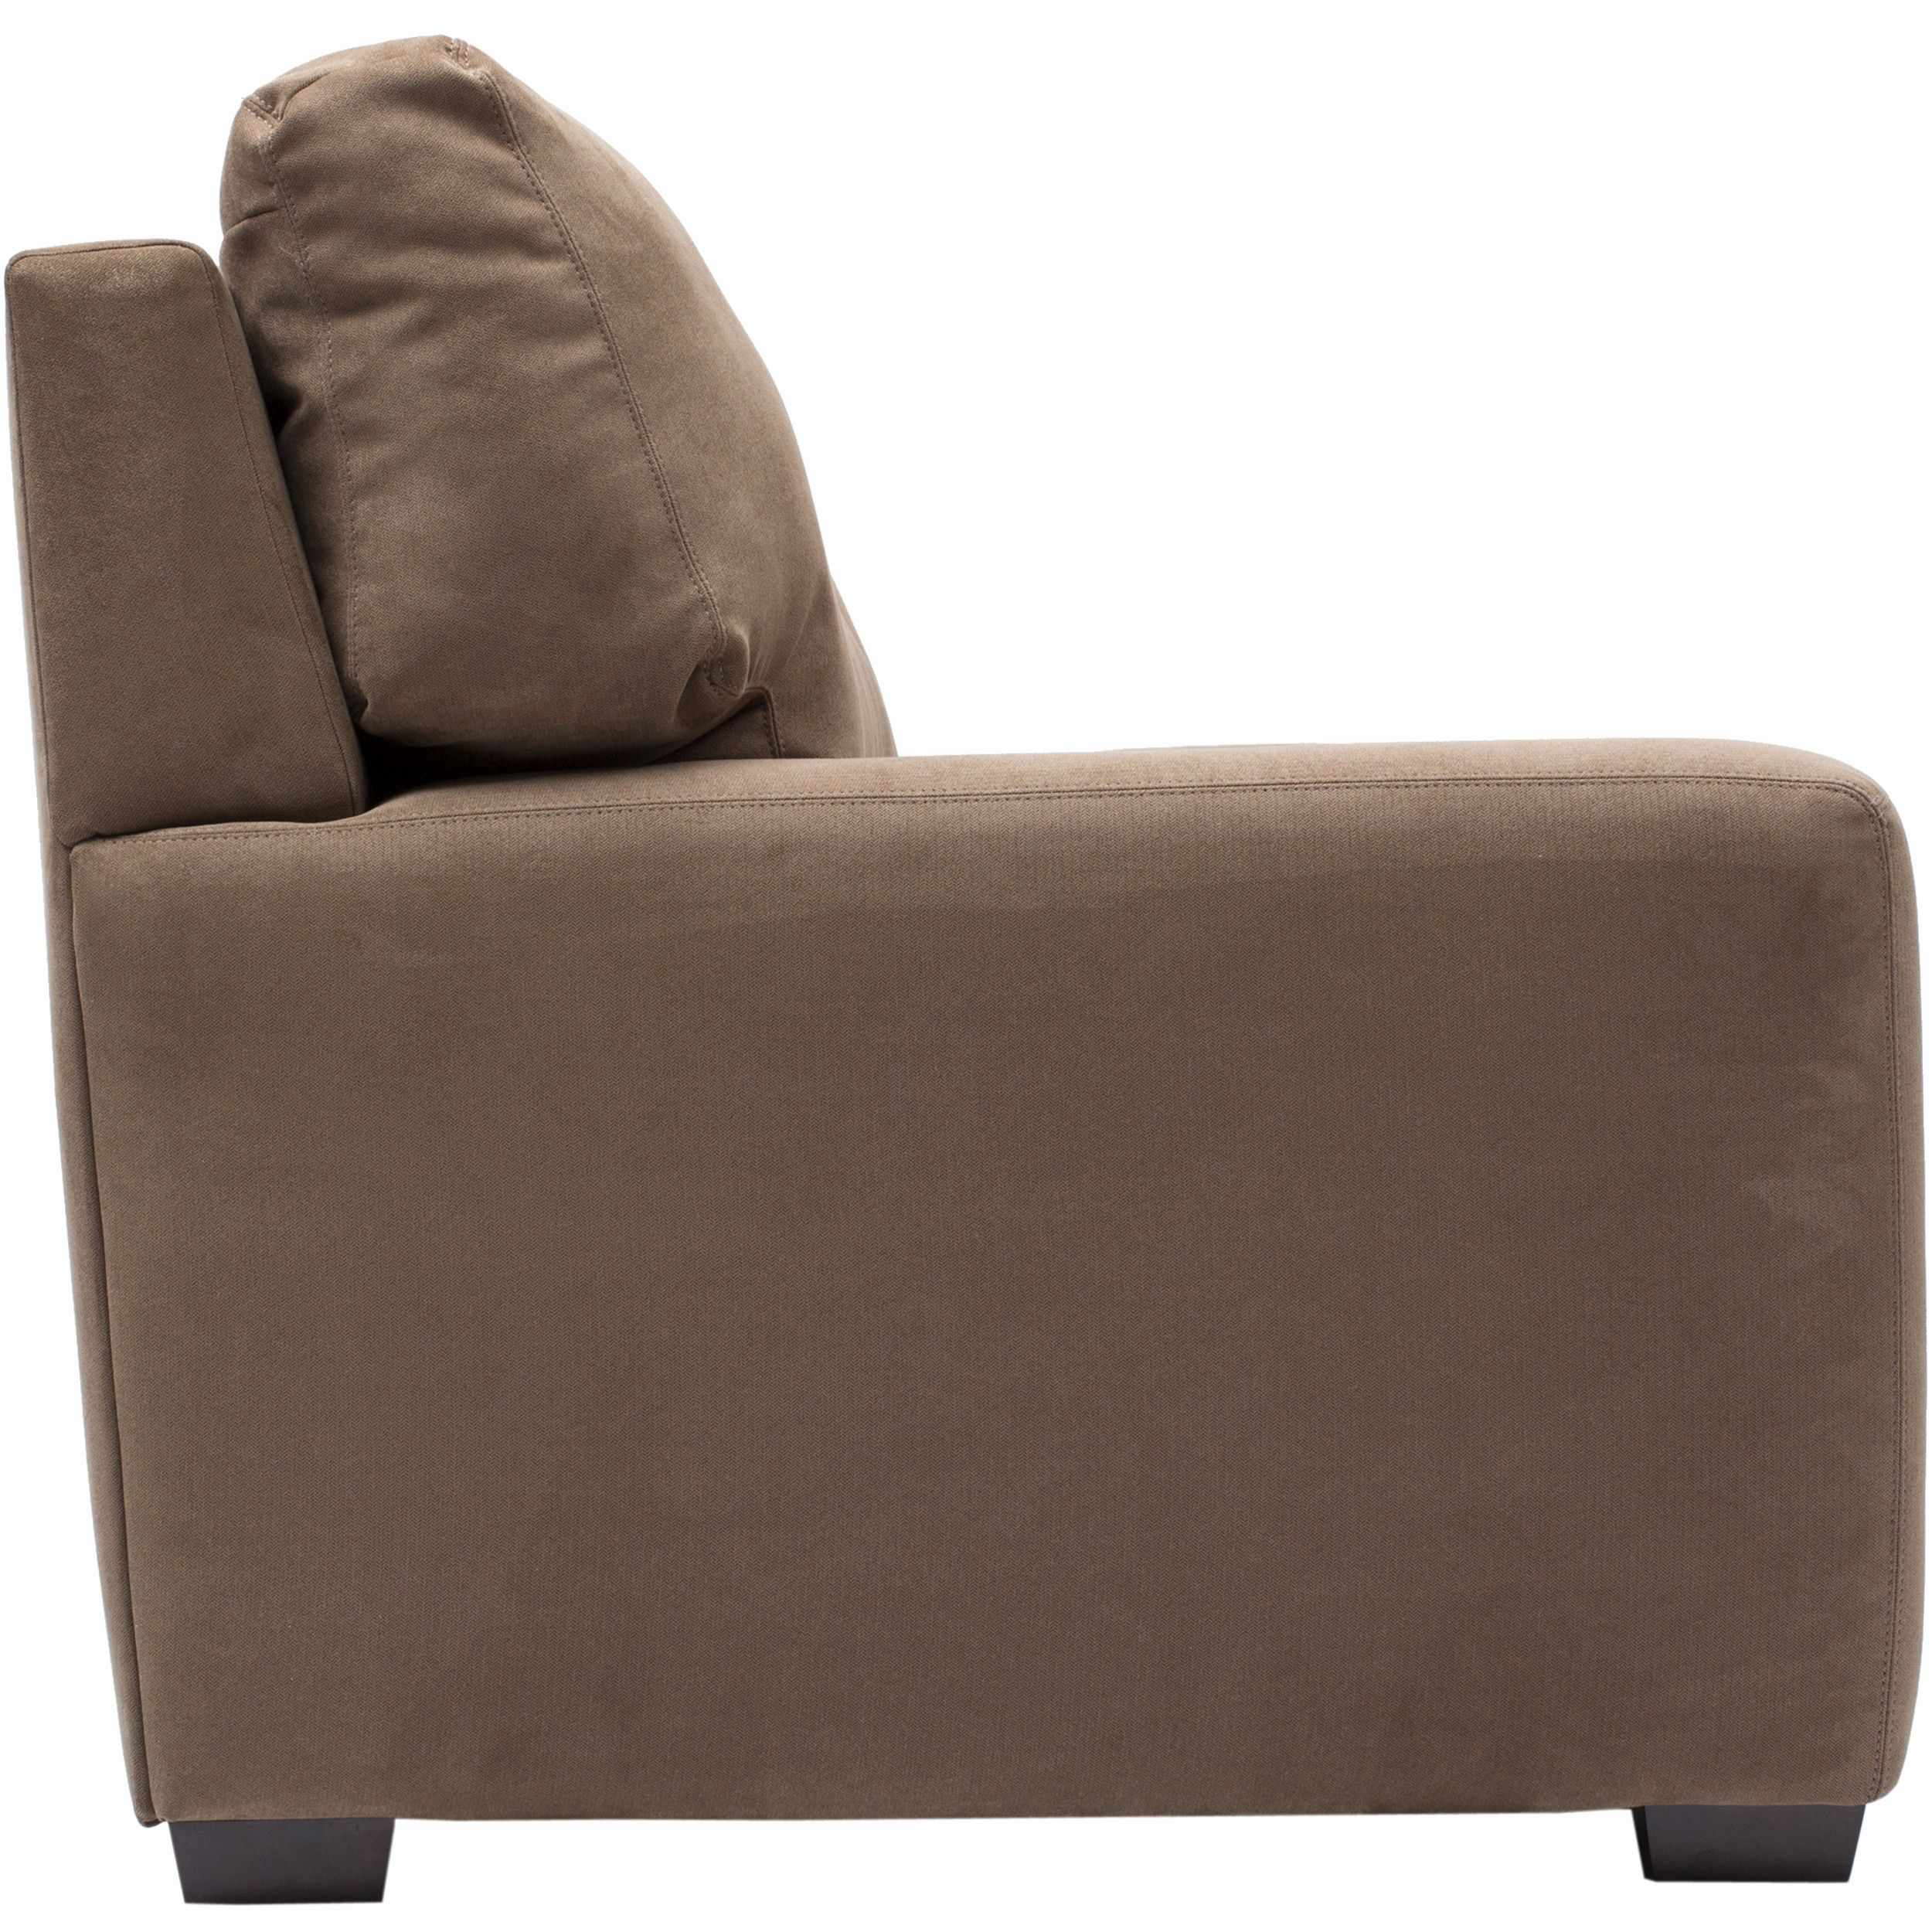 best sectional sleeper latest king furniture sofa full barn convertible comfort pottery size bed futon of